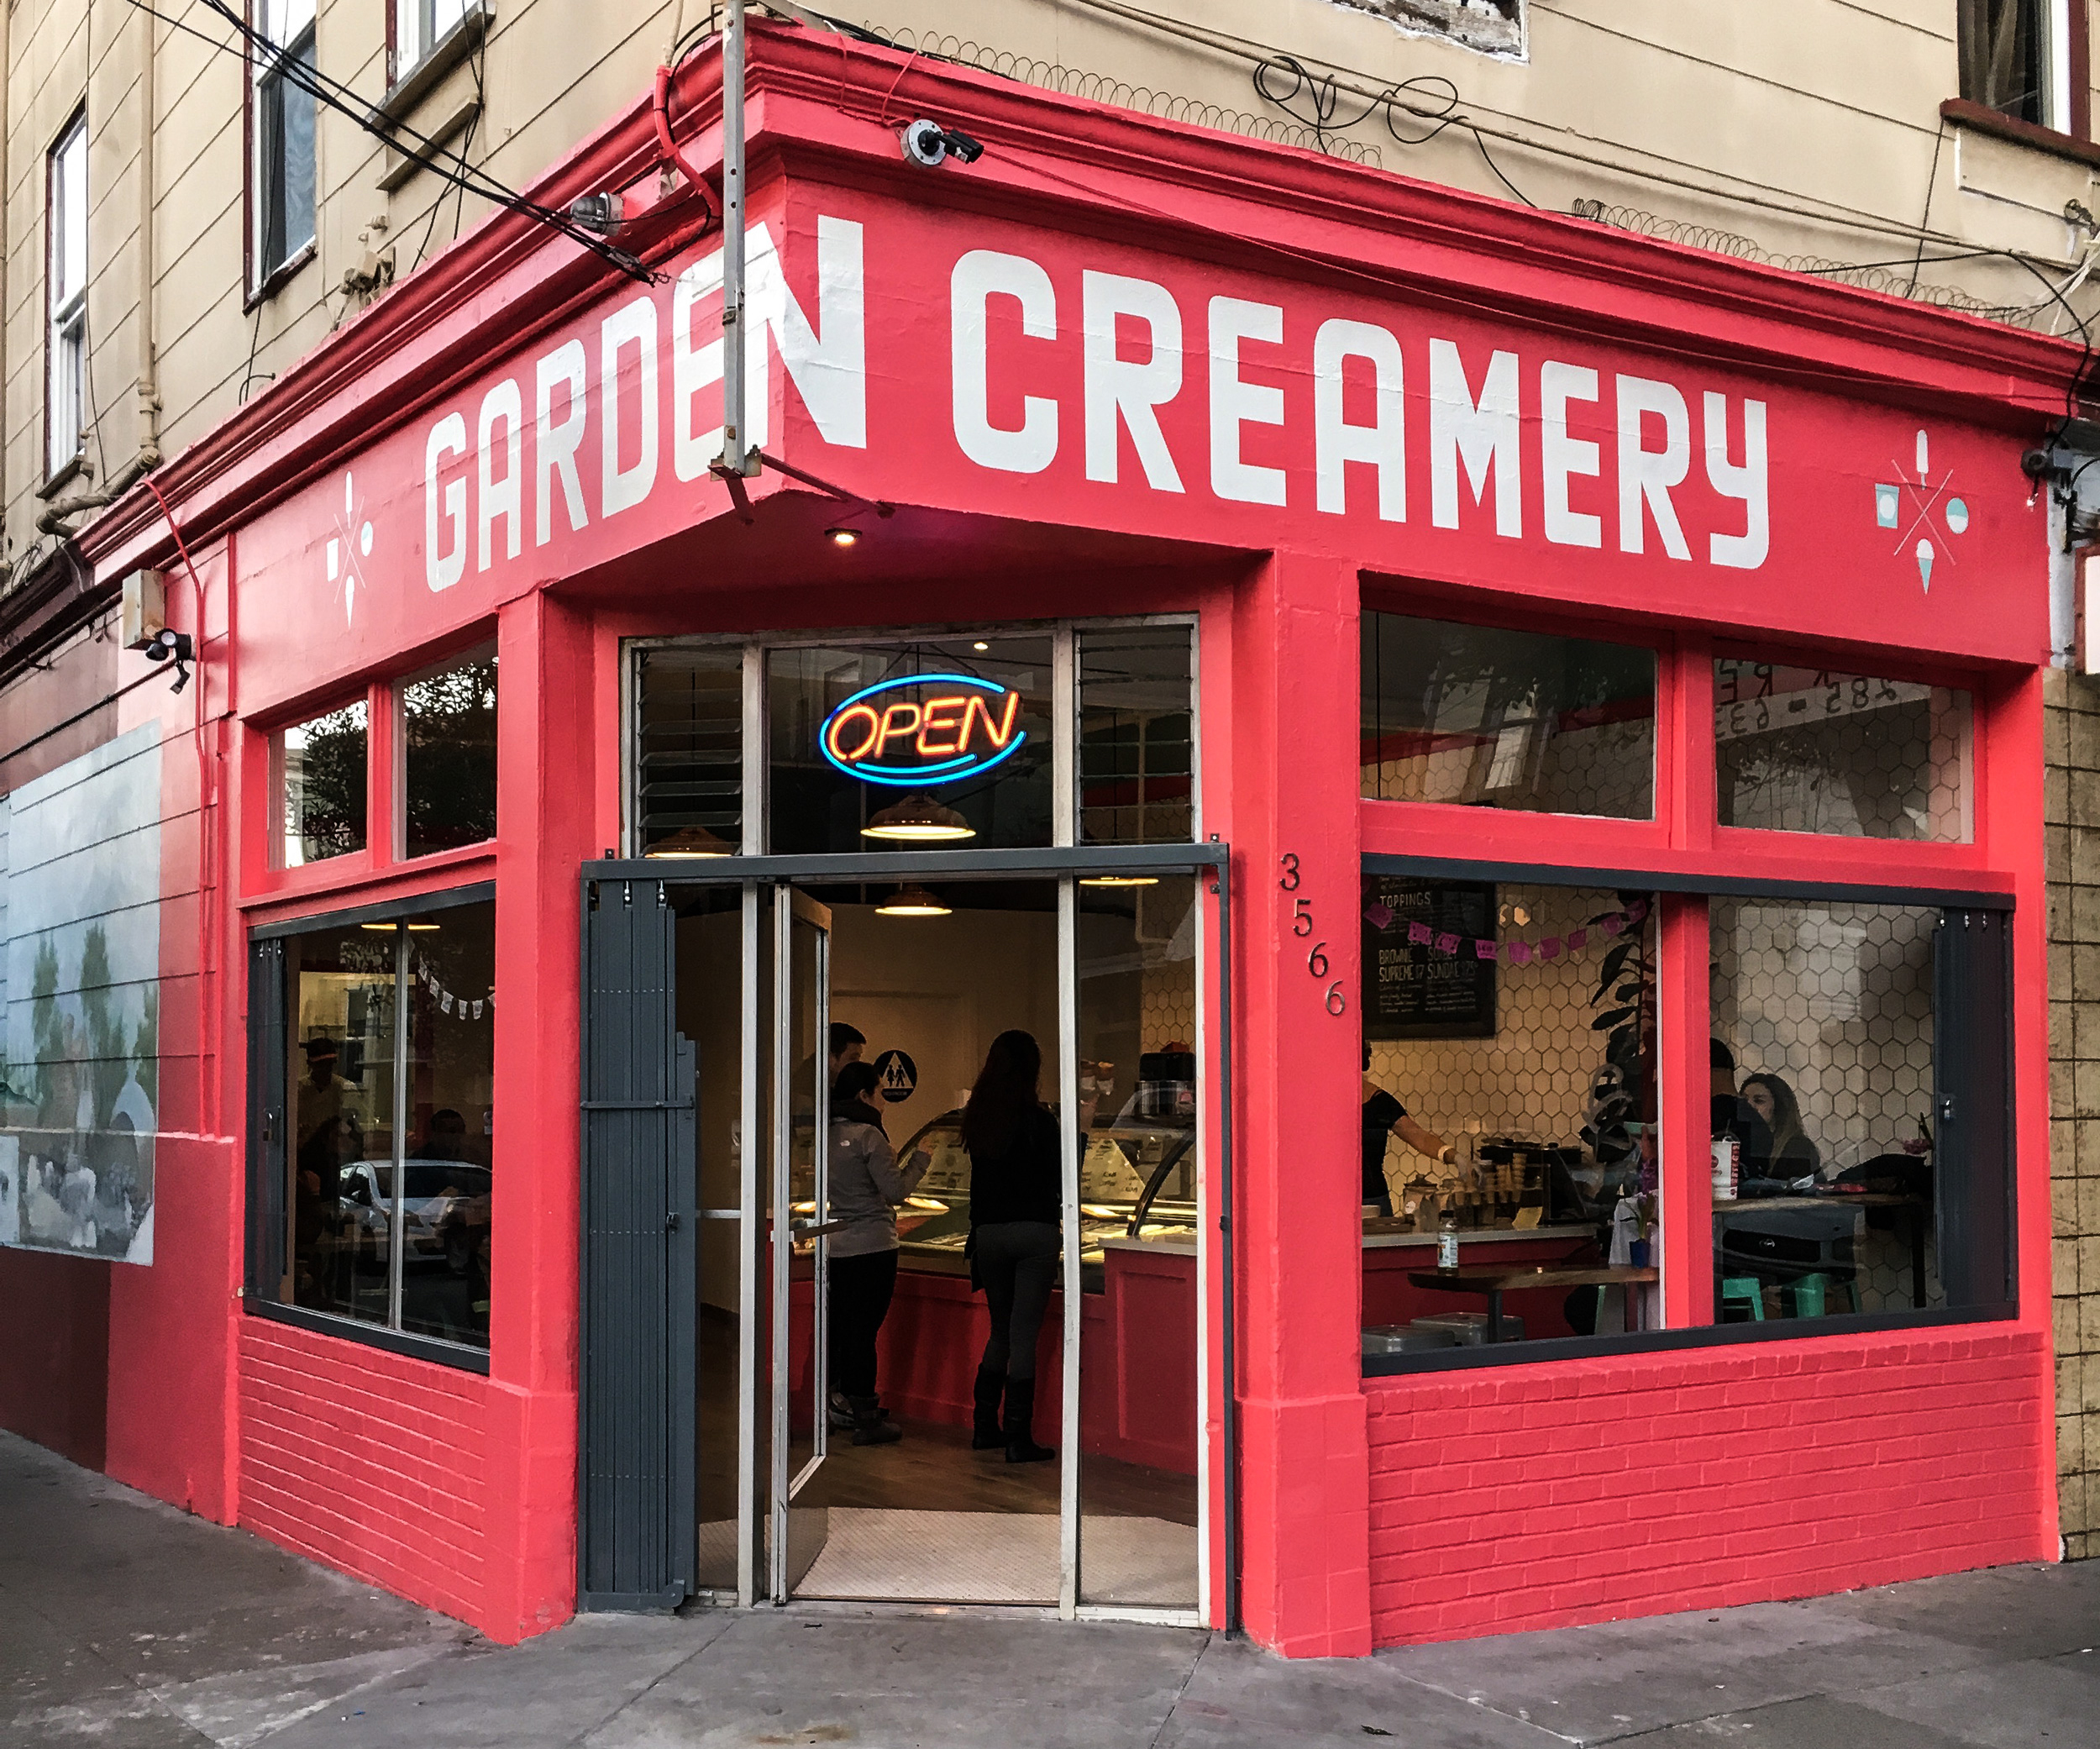 Garden Creamery storefront with pink super graphic wrapped around the side of building